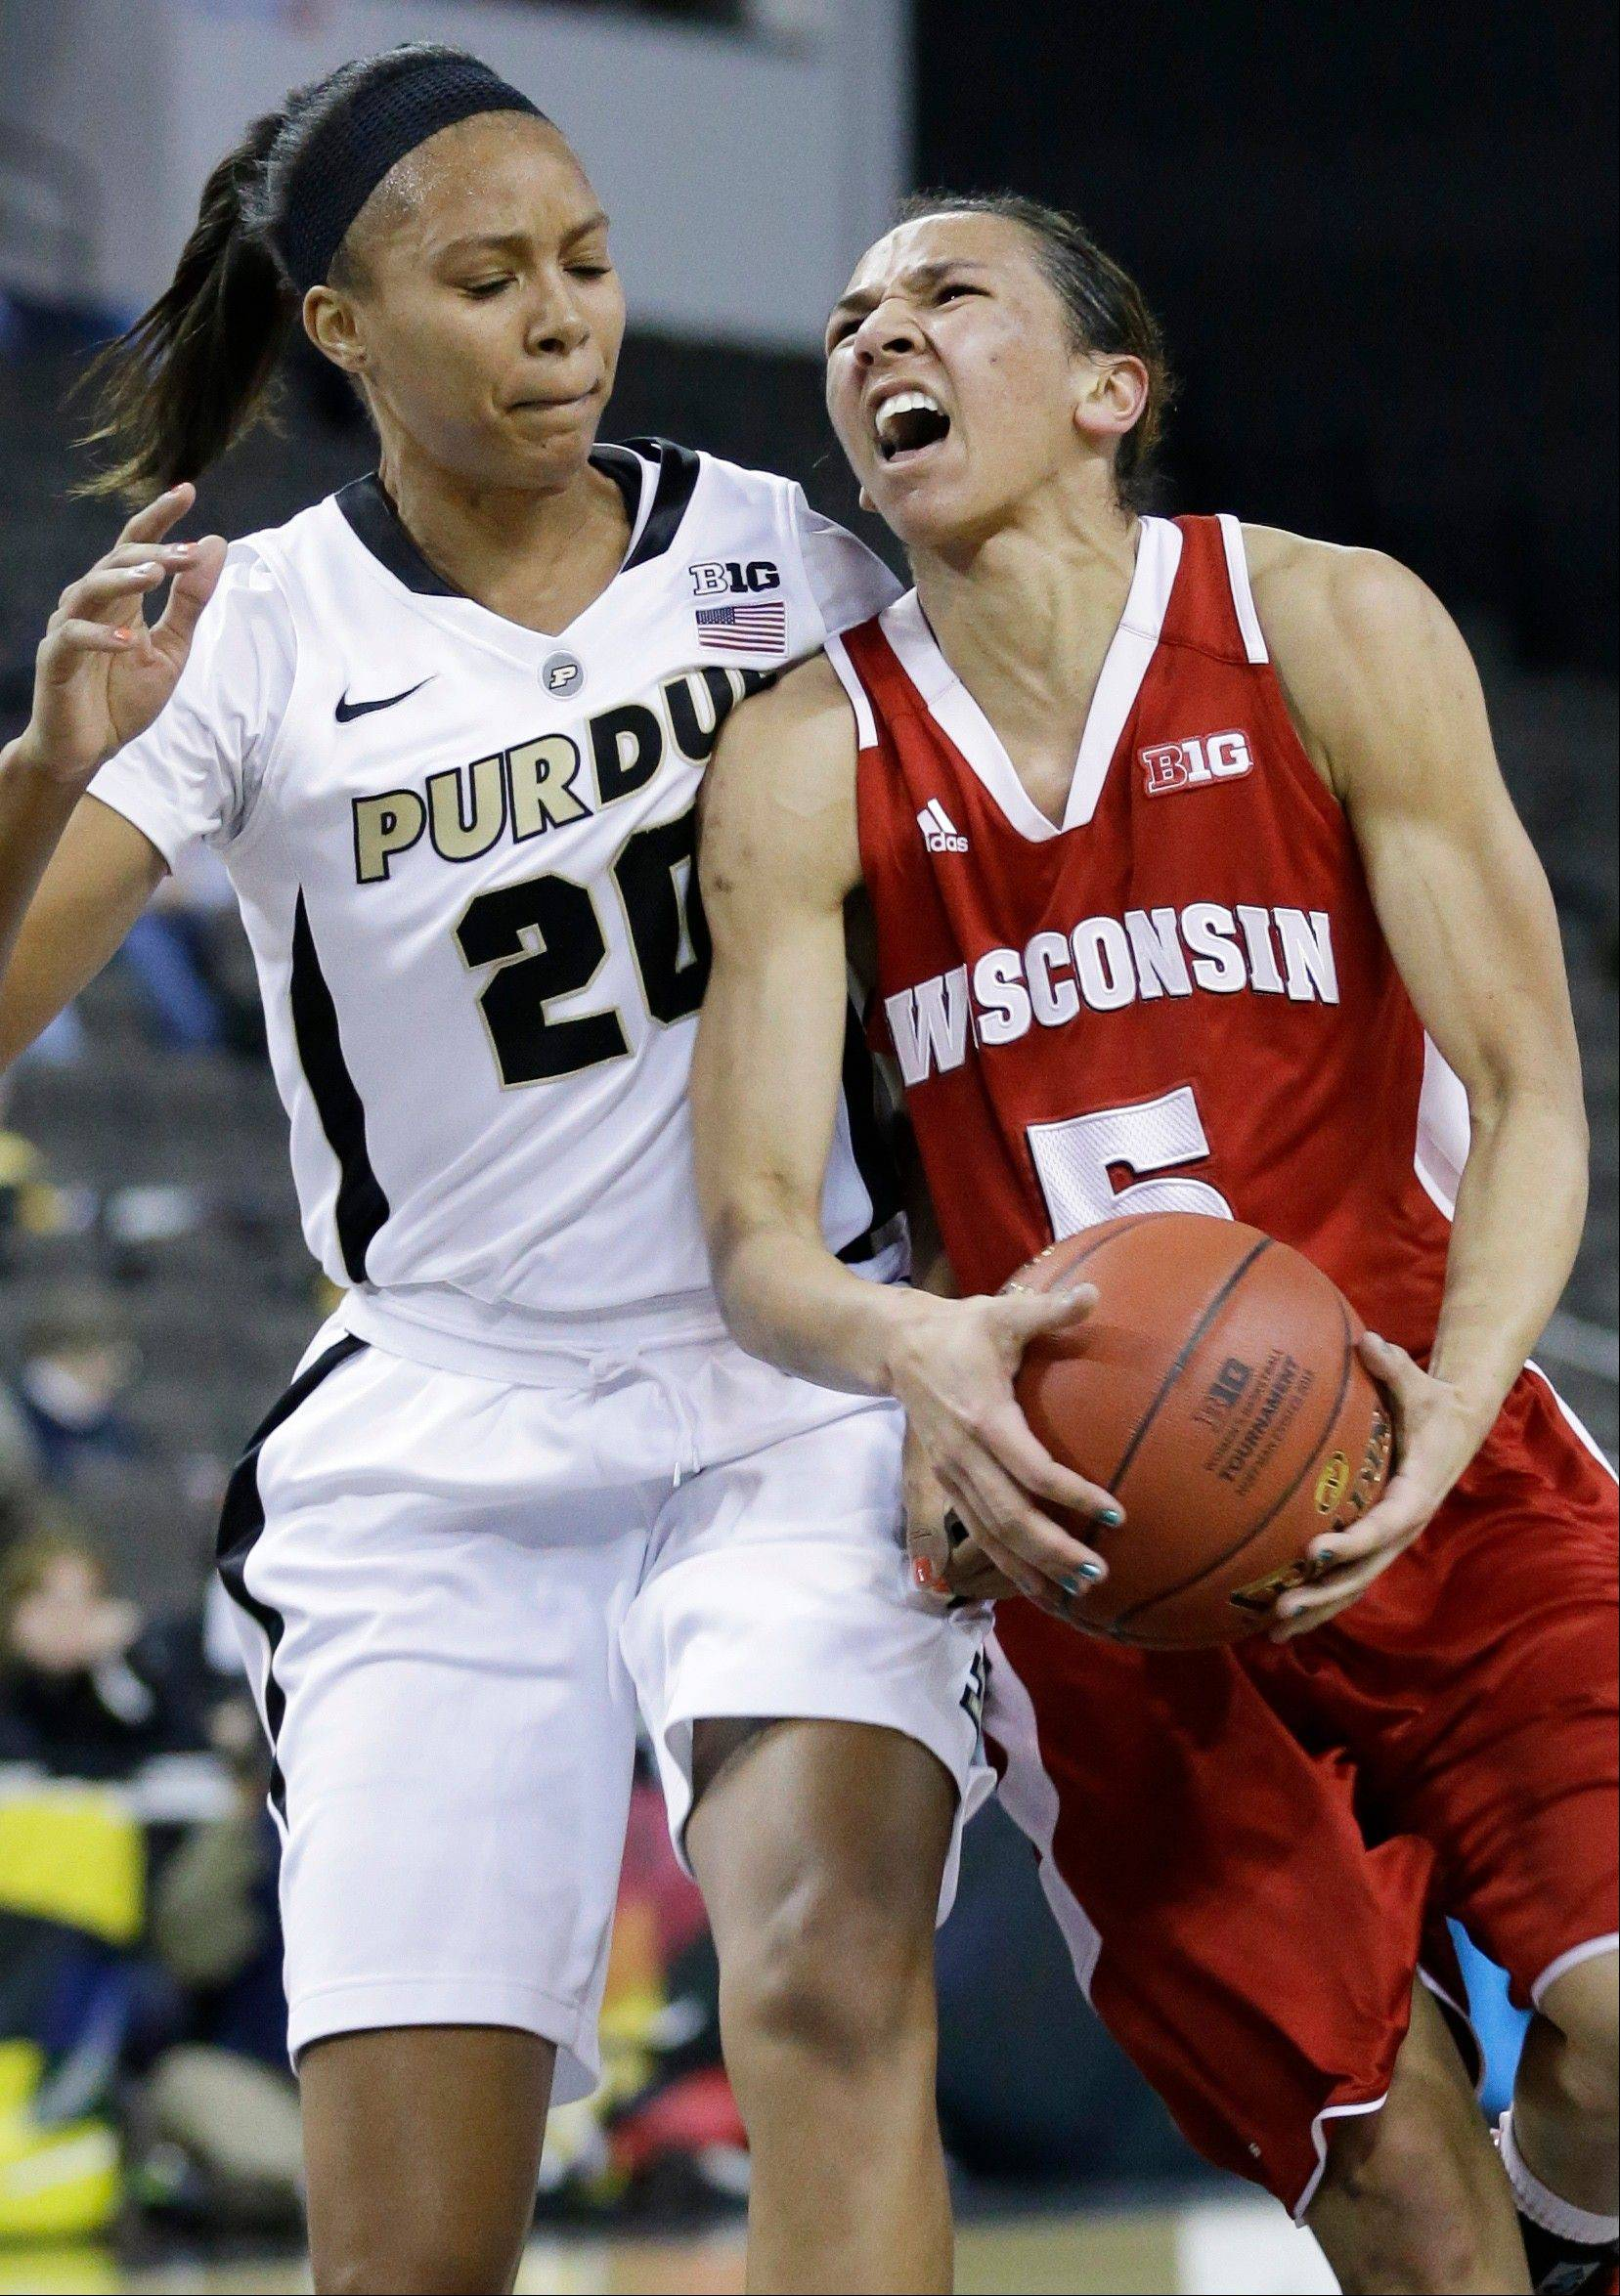 Wisconsin guard Morgan Paige, right, drives to the basket against Purdue guard Dee Dee Williams during the first half of an NCAA college basketball game in the Big Ten Conference tournament in Hoffman Estates, Ill., on Friday, March 8, 2013.